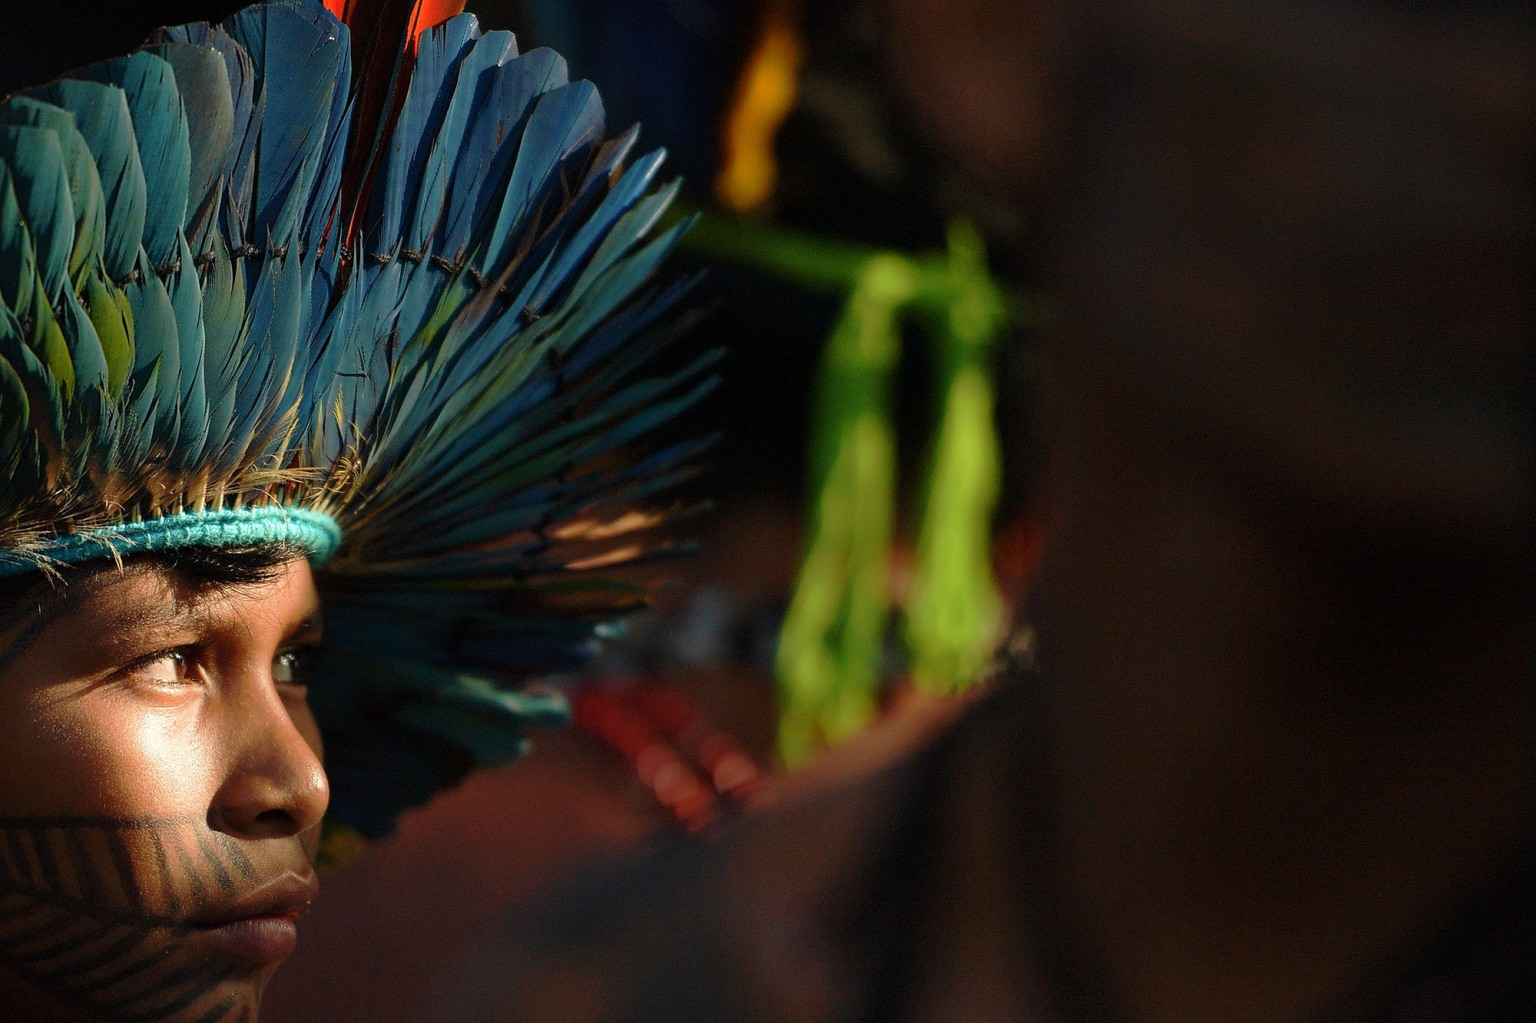 A boy from the Munduruku tribe in Brazil attends a meeting at the Acampamento Terra Livre (Free Land Camp) on April 24. Approximately 2,500 indigenous people from different tribes are taking part in Indigenous National Mobilization week, which seeks to tackle territorial rights' negotiations with the government. CARL DE SOUZA/AFP/Getty Images